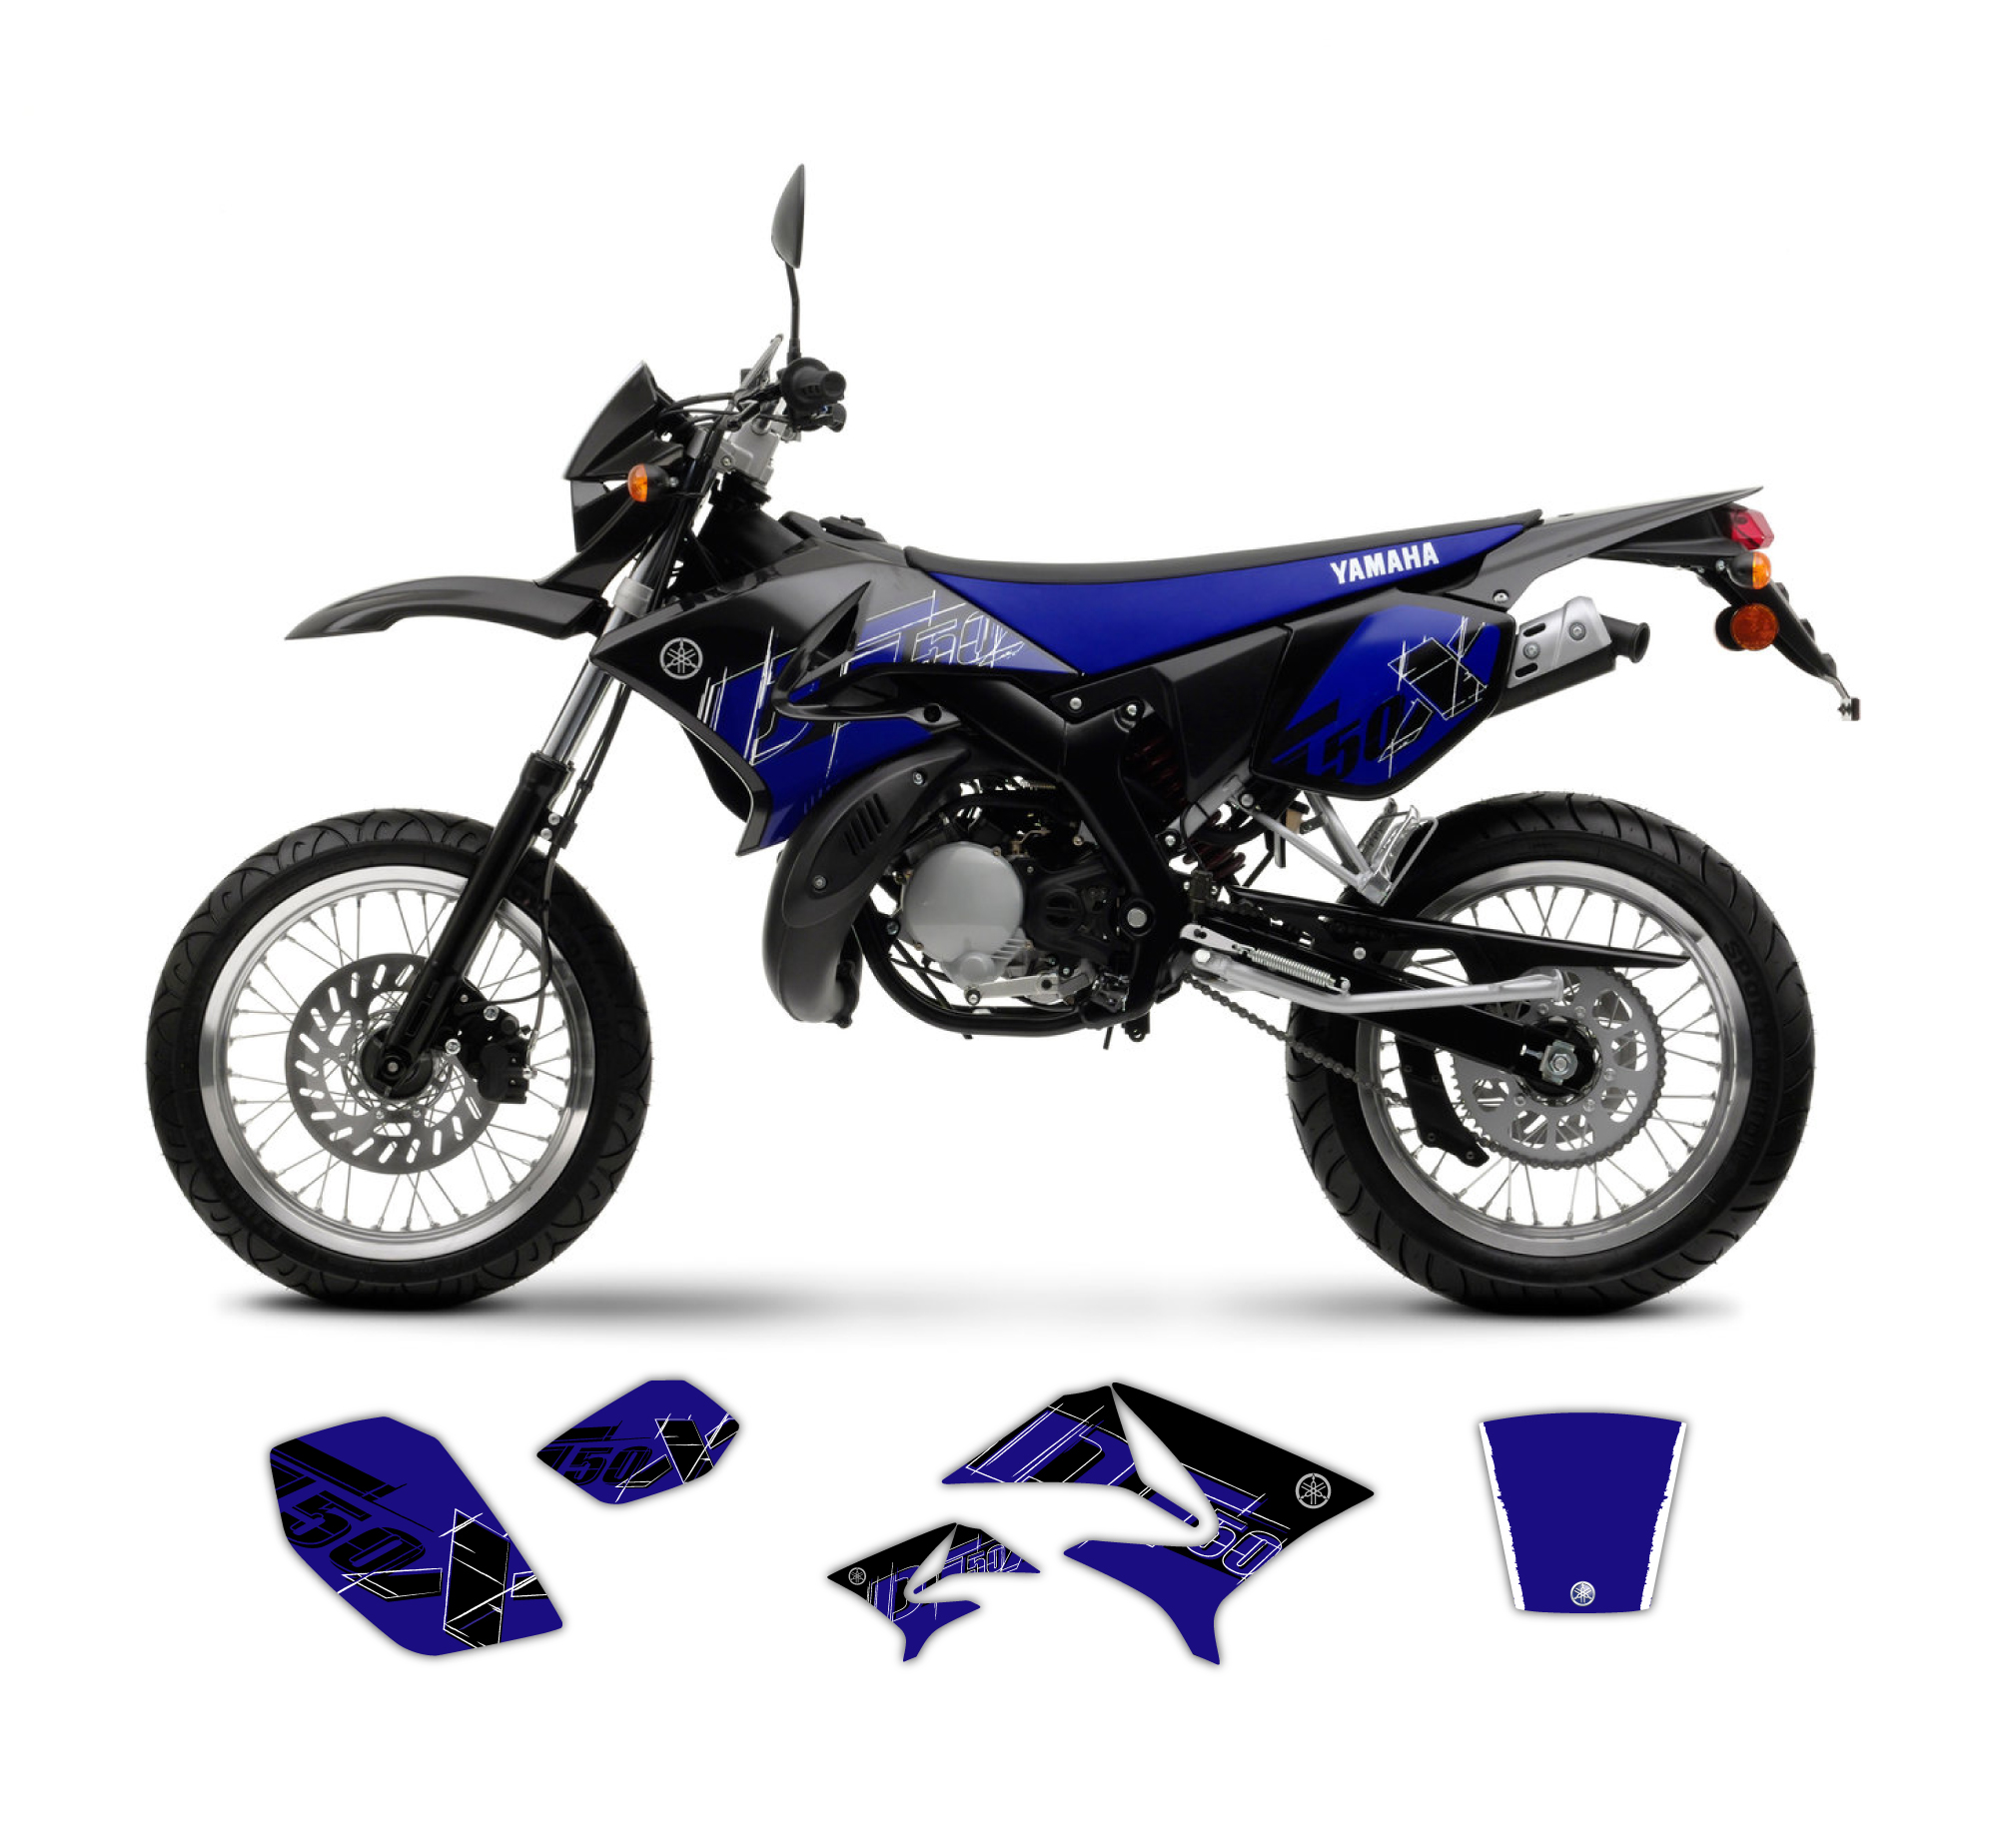 yamaha dt 50 x r replica graphics kit 2008 model tmx graphics. Black Bedroom Furniture Sets. Home Design Ideas